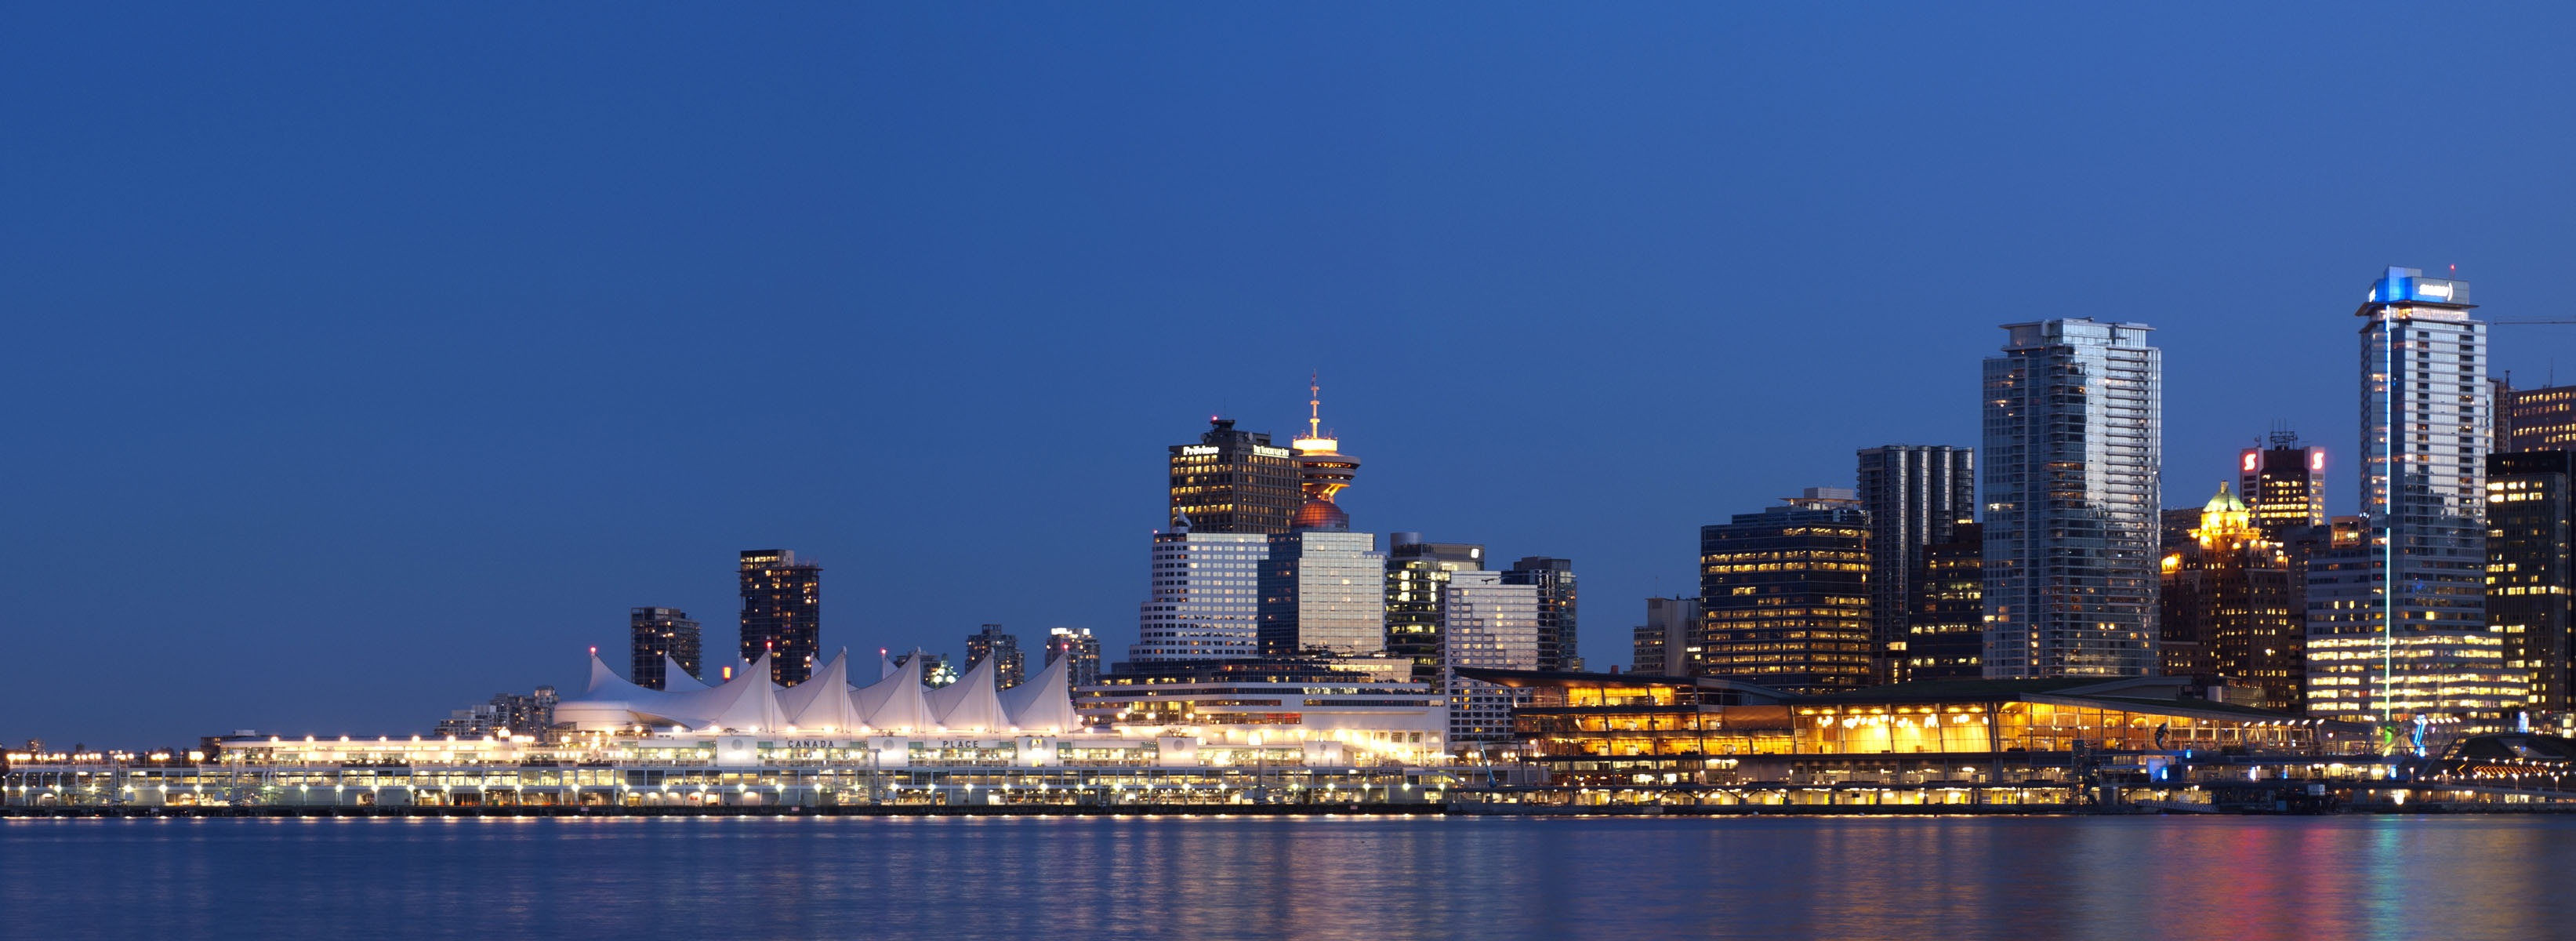 CANADA - BC - Vancouver Skyline